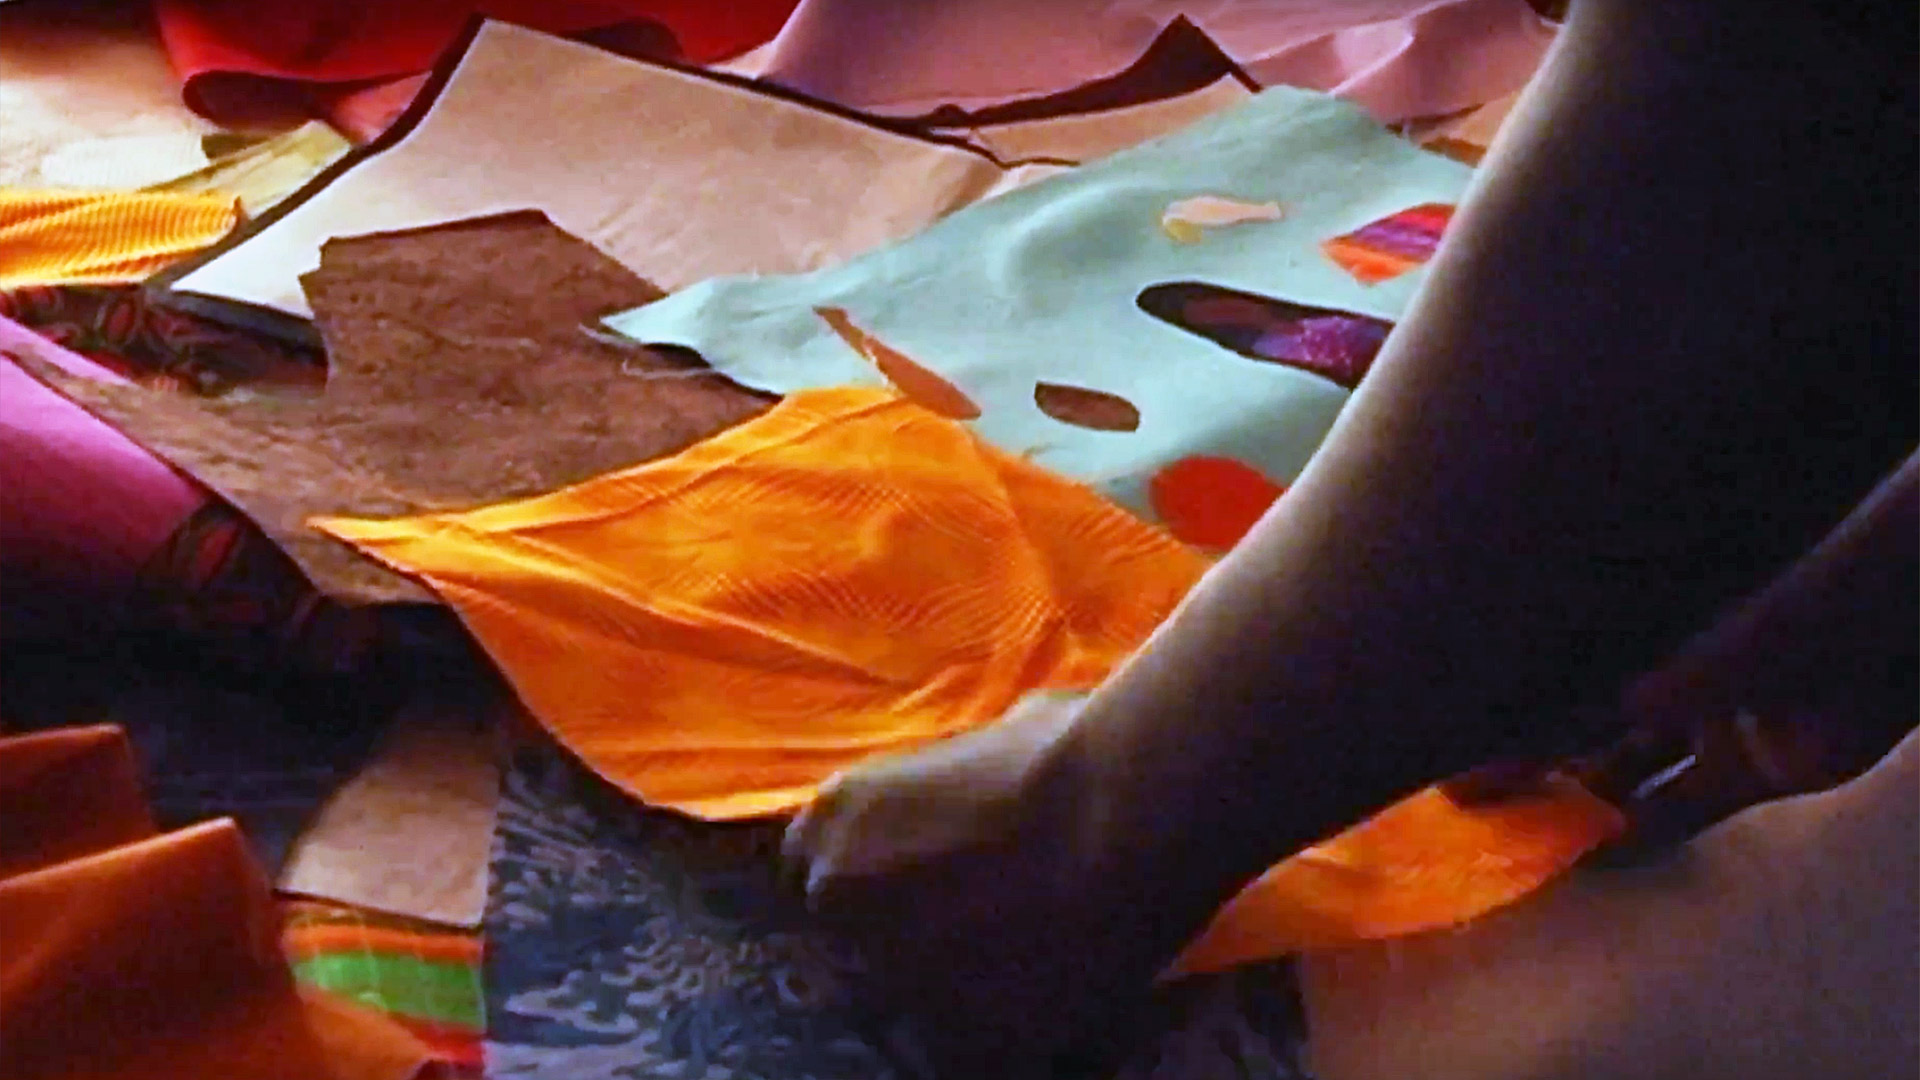 The next step after sketching is selecting the fabric. From the documentary The Quilted Conscience